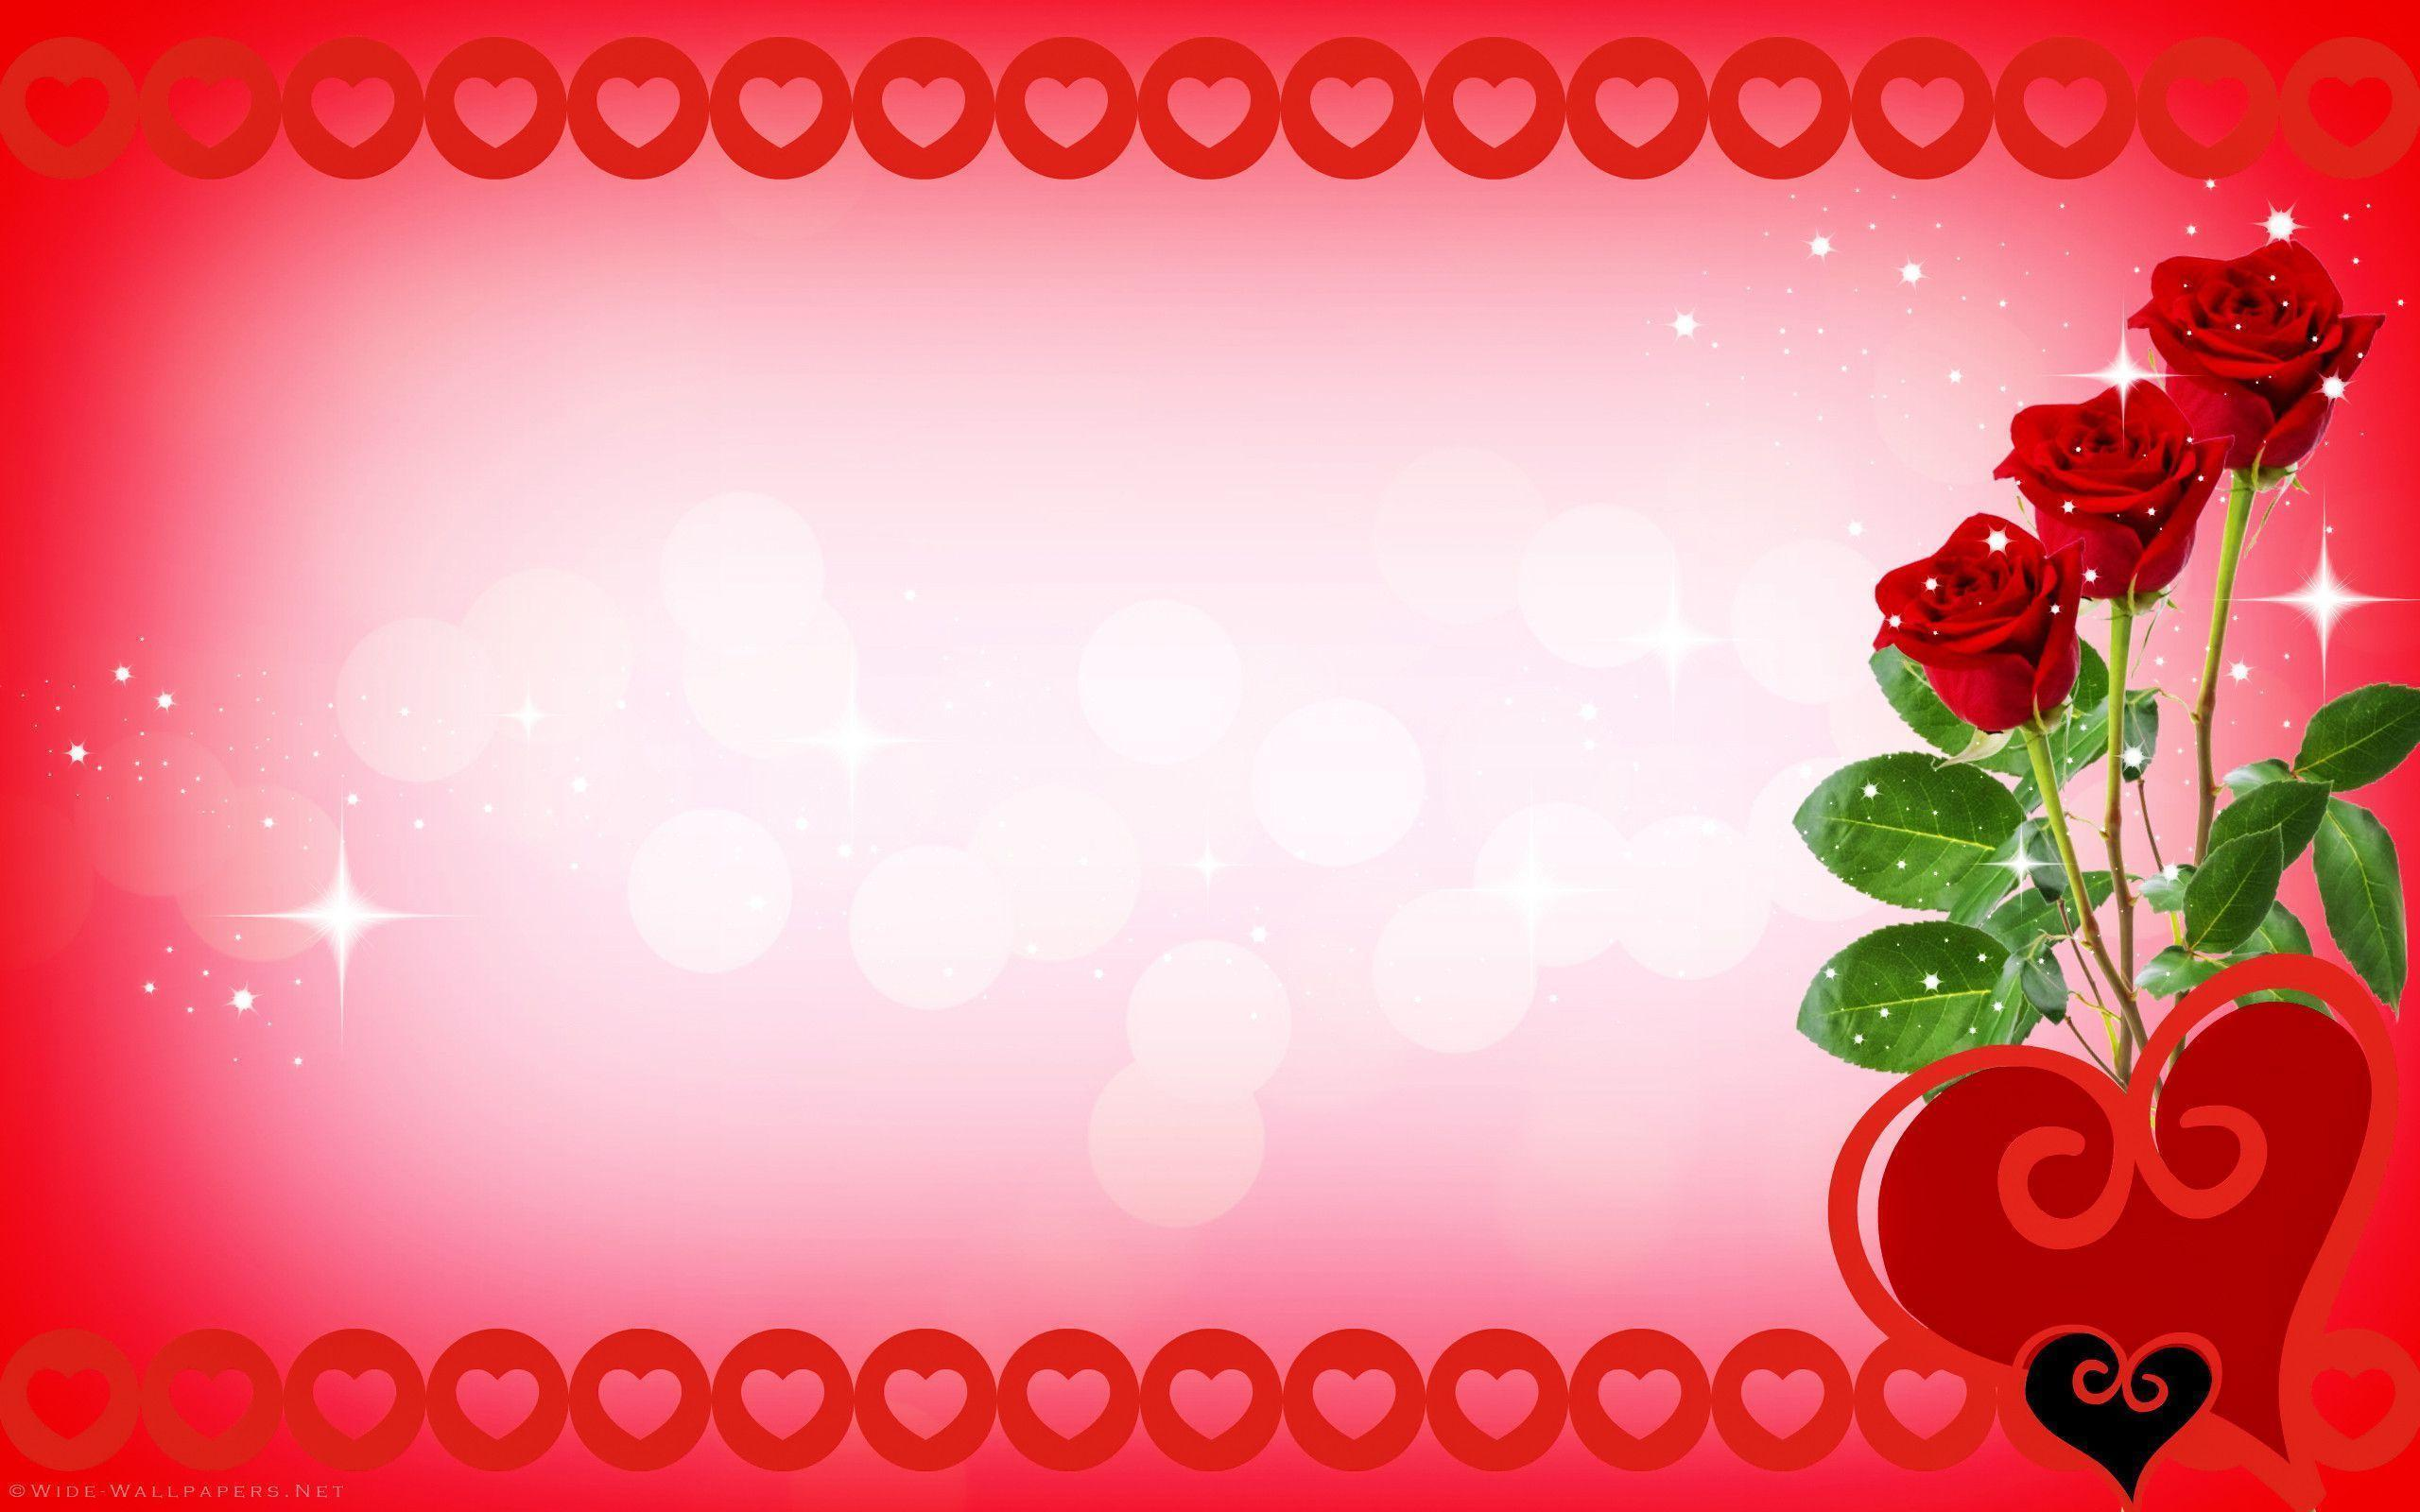 Red roses and hearts wallpapers wallpaper cave - Pink roses and hearts wallpaper ...